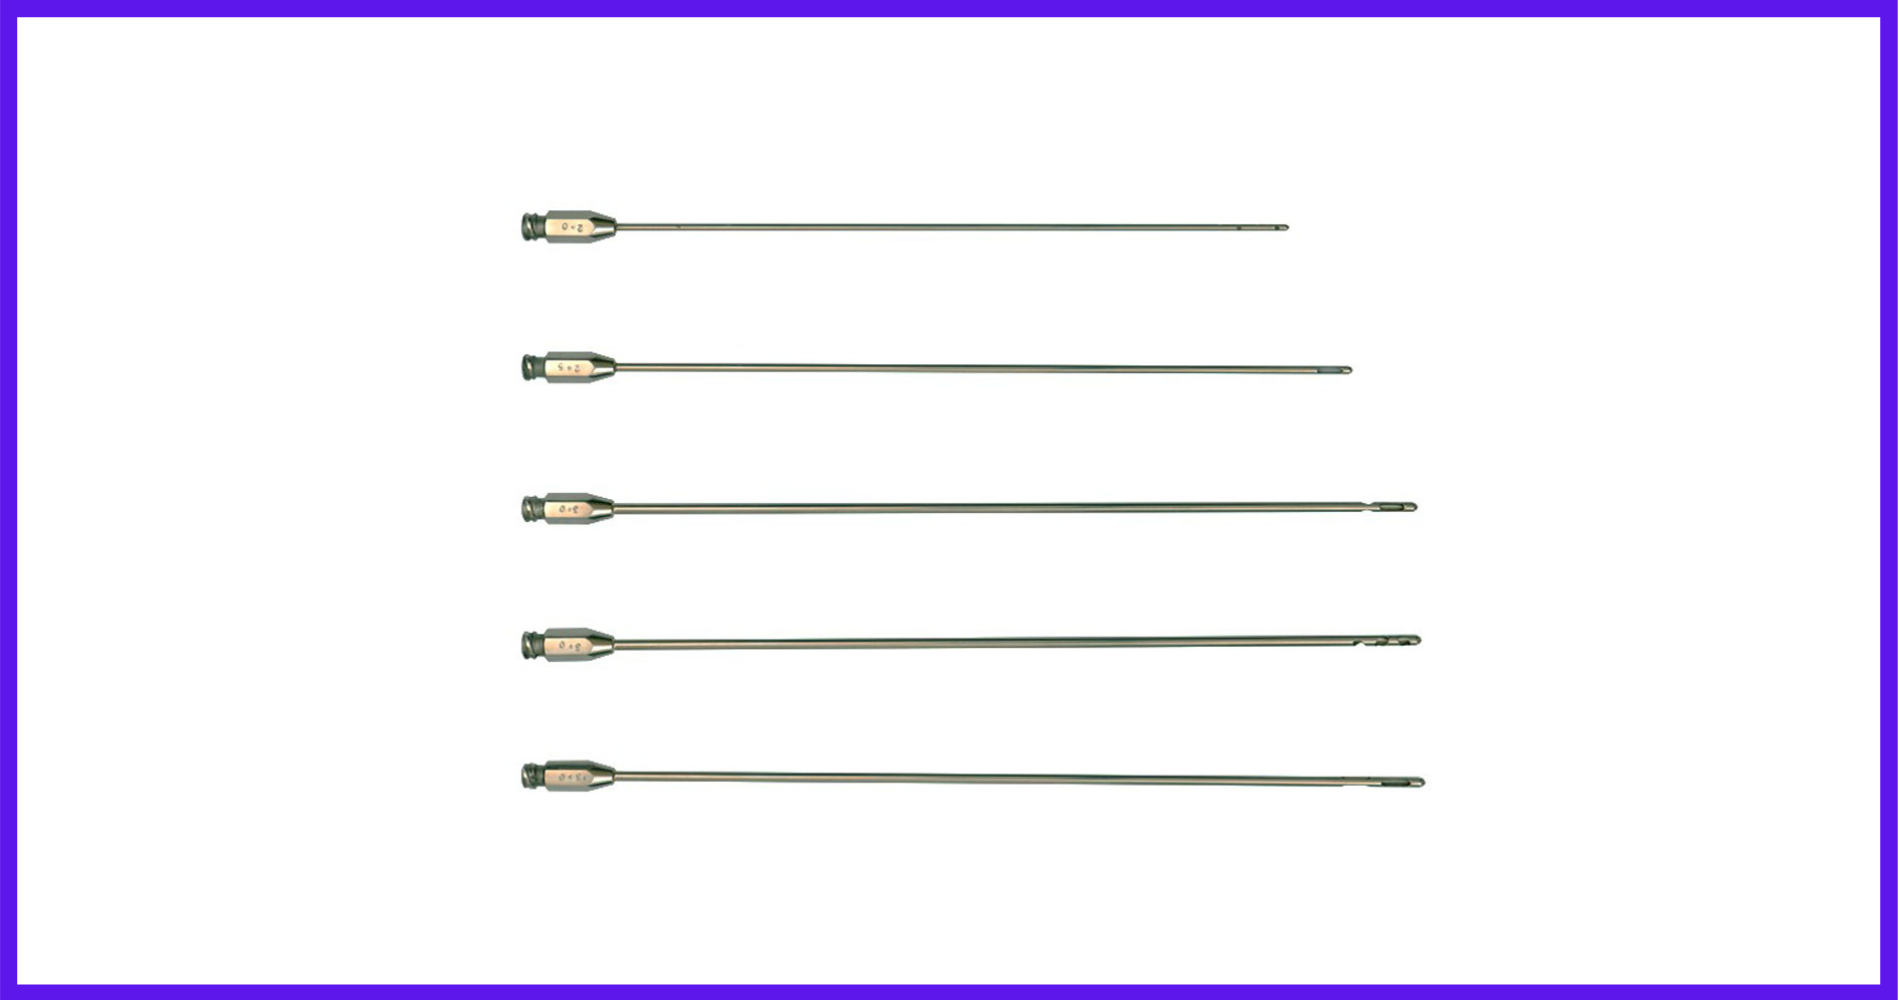 Liposuction Instruments and Cannulas